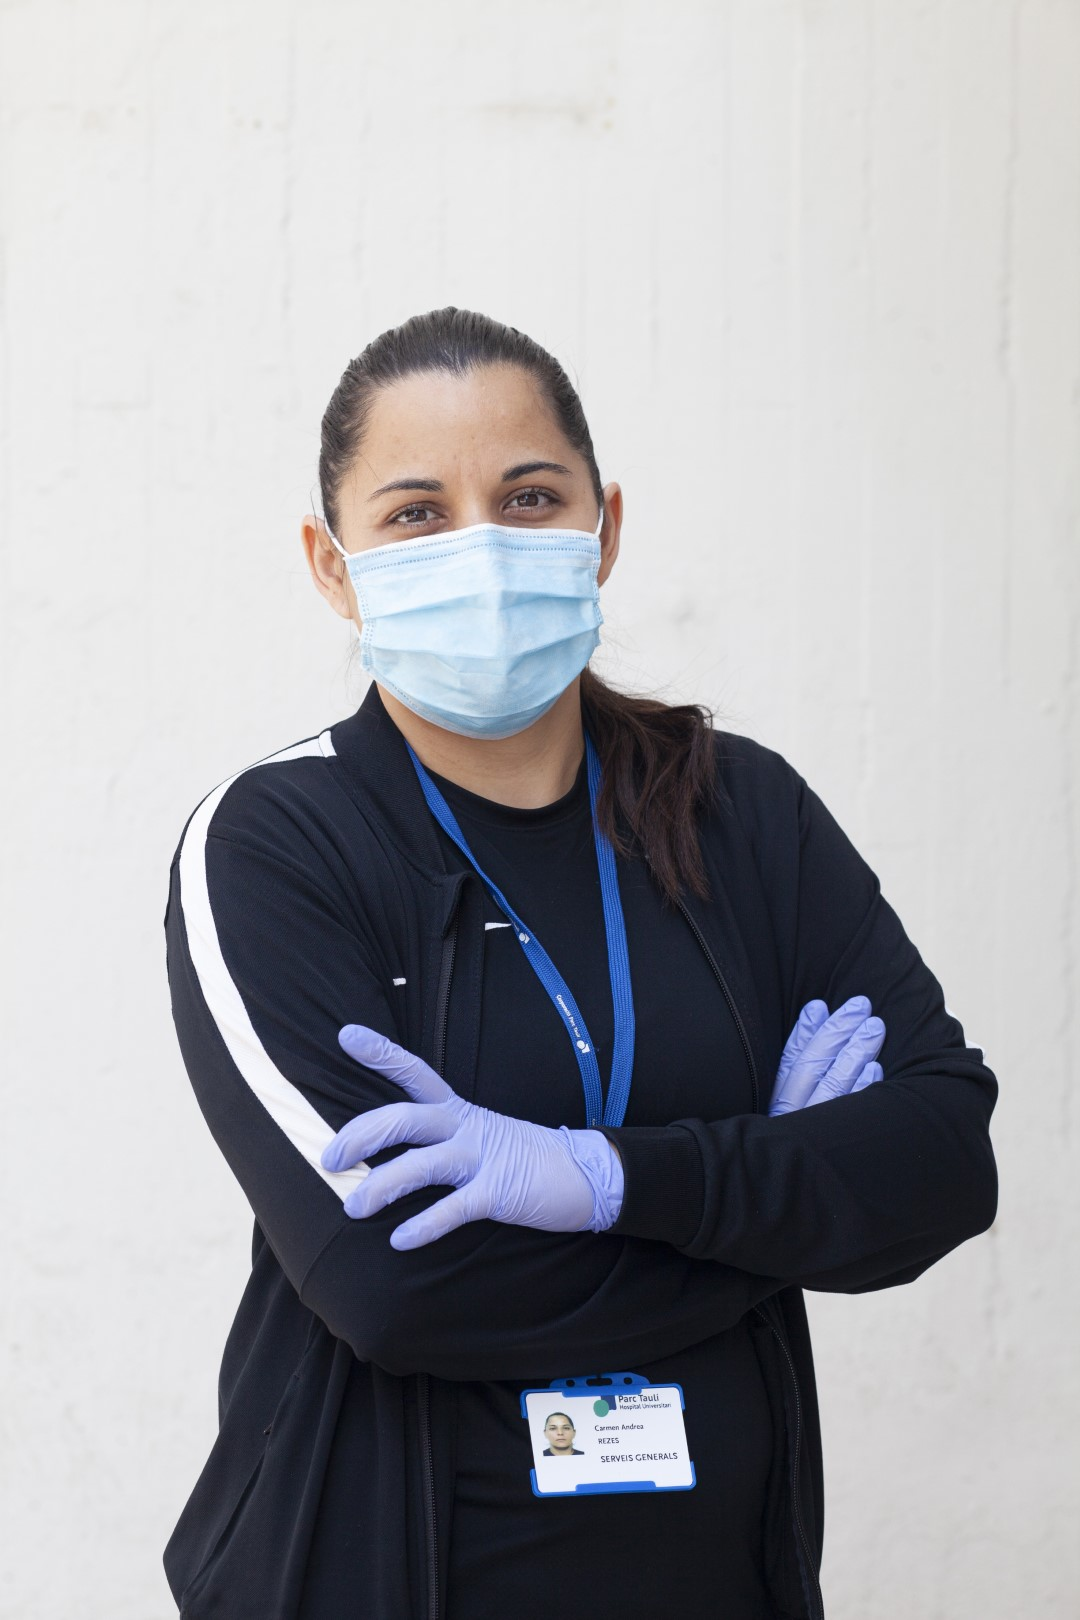 To the front line. Faces from different sectors that stand firm in the fight against COVID-19. Andrea Rezes, cleaning staff at the Parc Taulí Hospital. April 9, 2020; Sabadell, Barcelona.